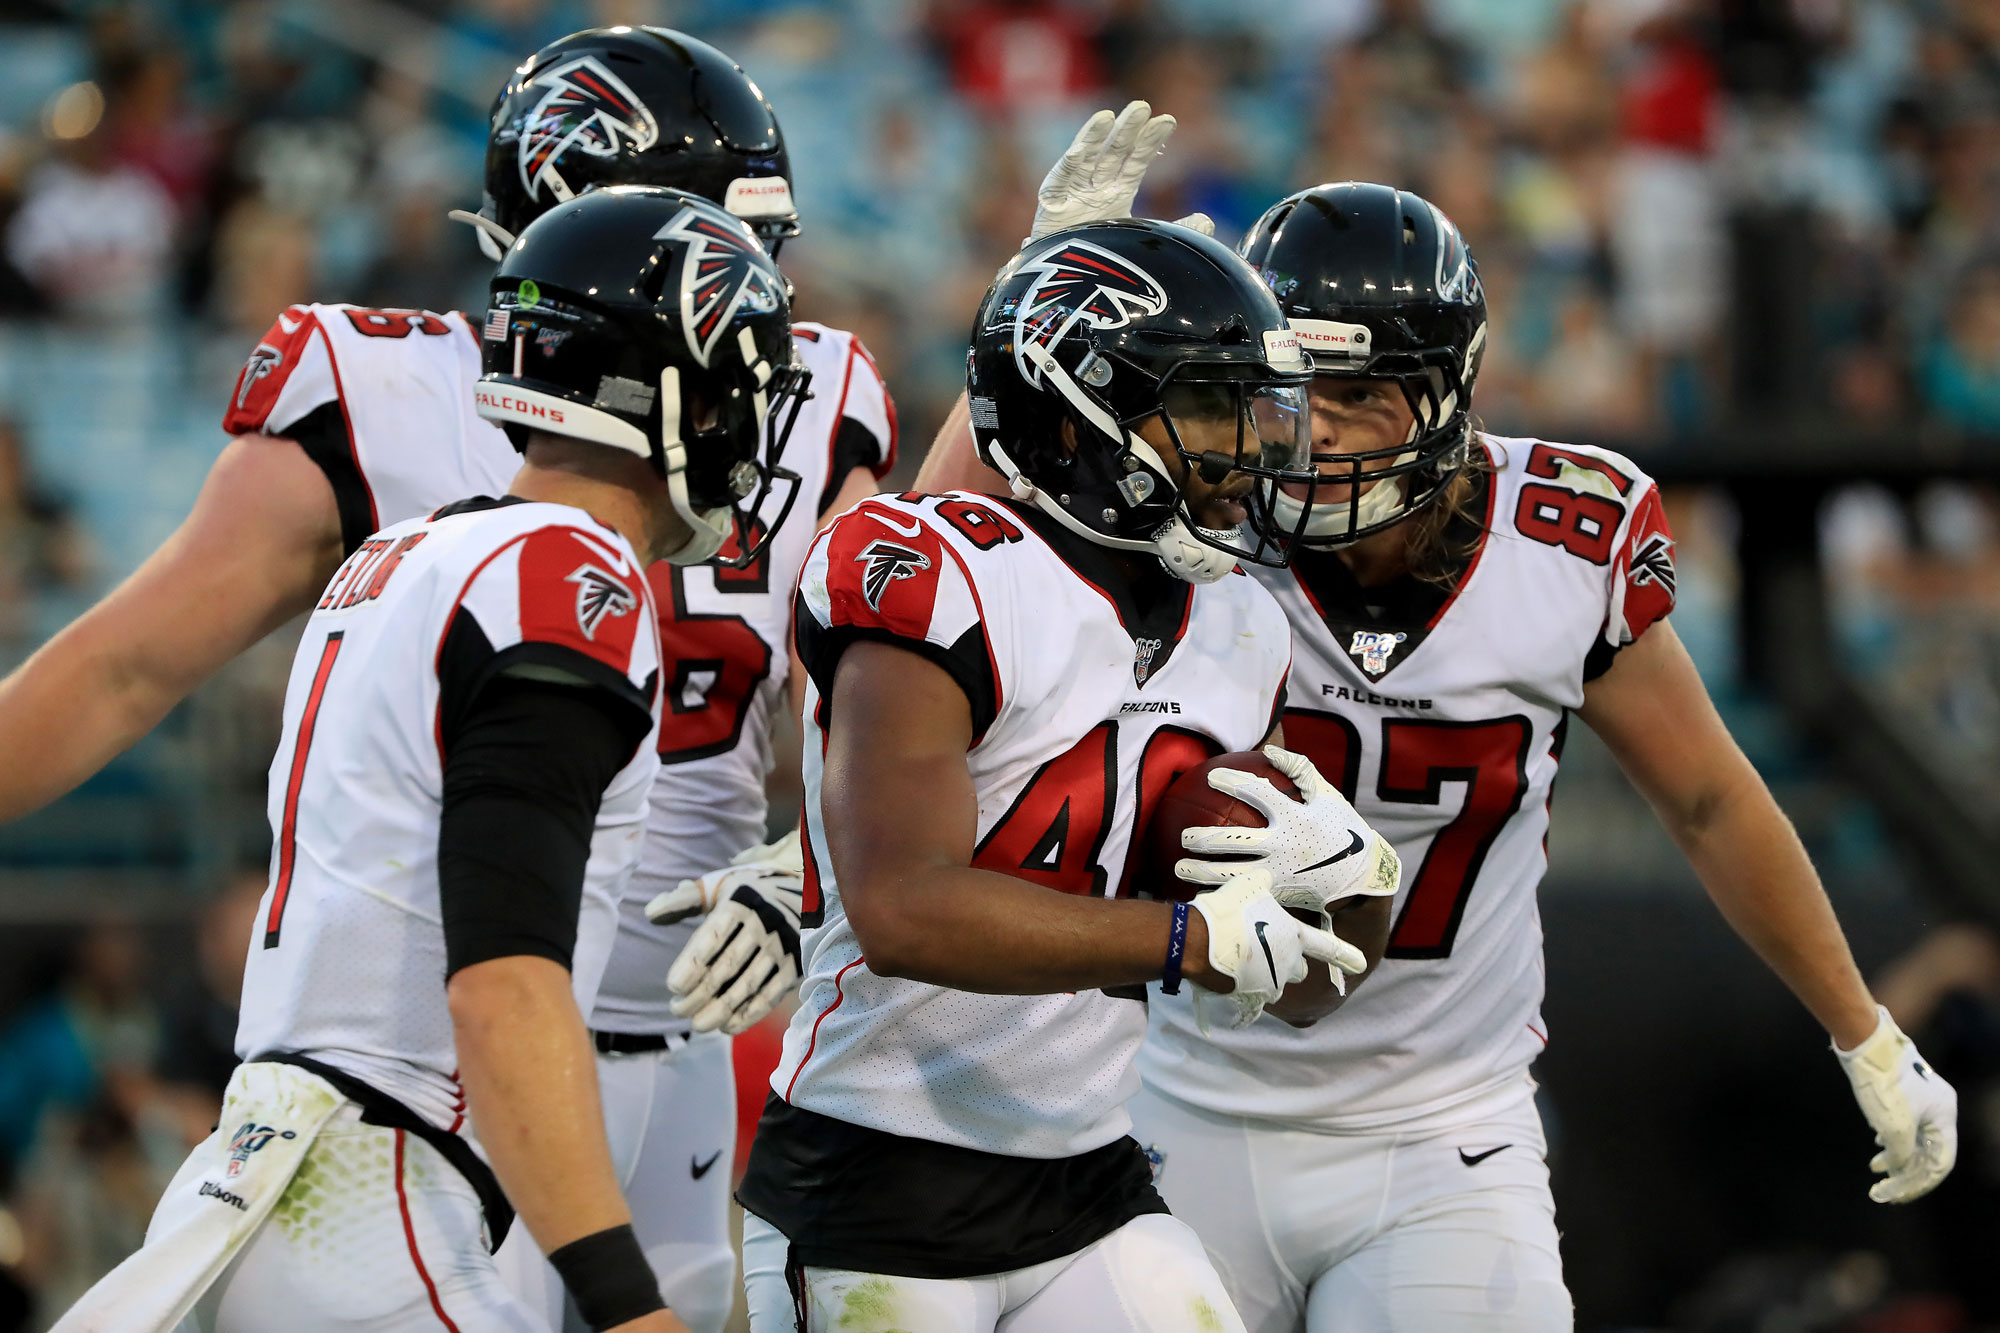 Tony Brooks-James des Atlanta Falcons célèbre un touchdown face aux Jaguars de Jacksonville